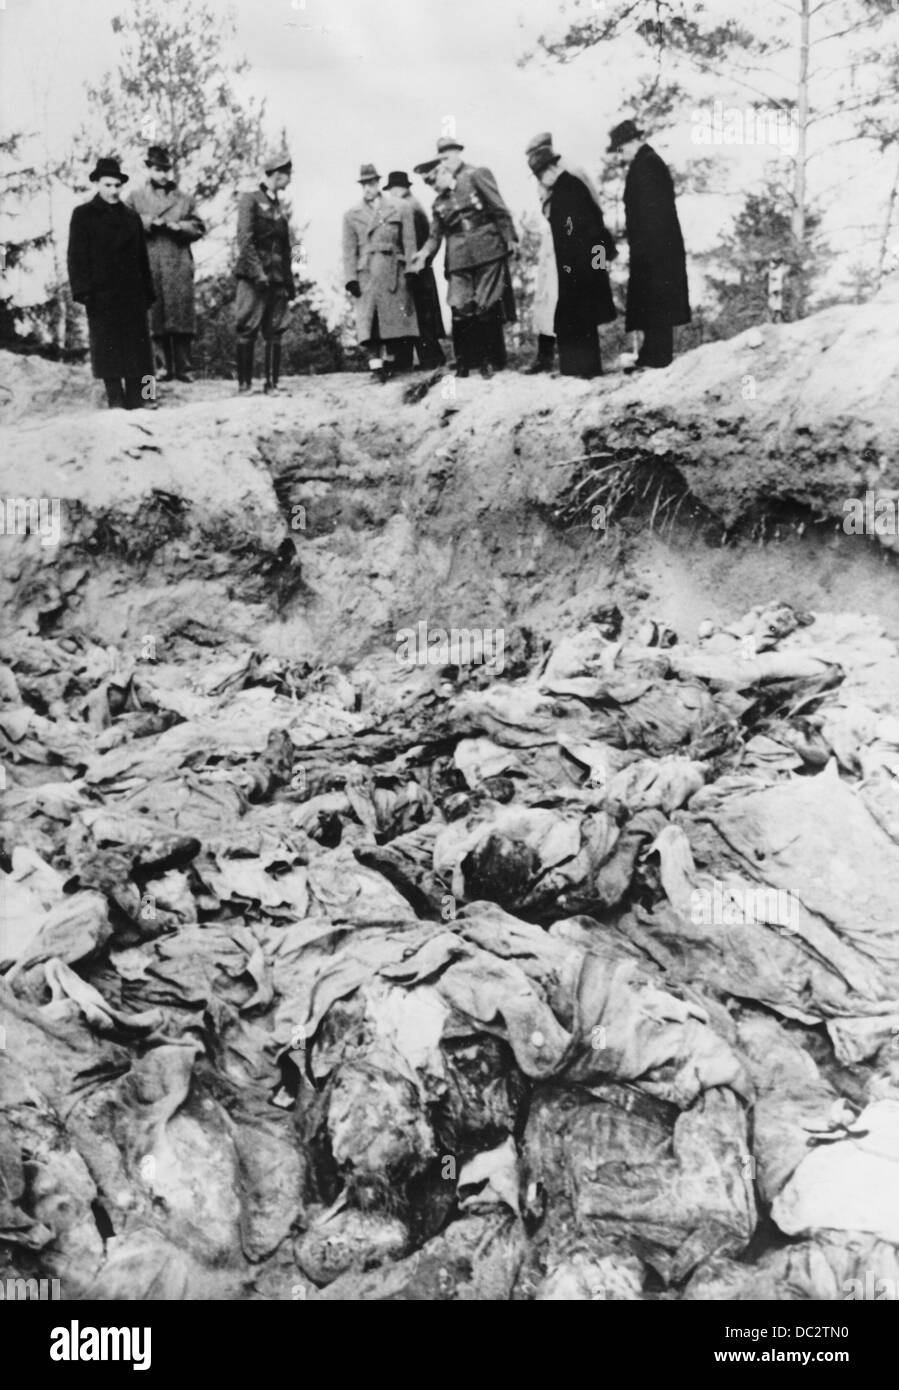 The discovery of the mass graves in Katyn (Russia) by the German Wehrmacht in February 1943 - the Nazi Propaganda! Stock Photo